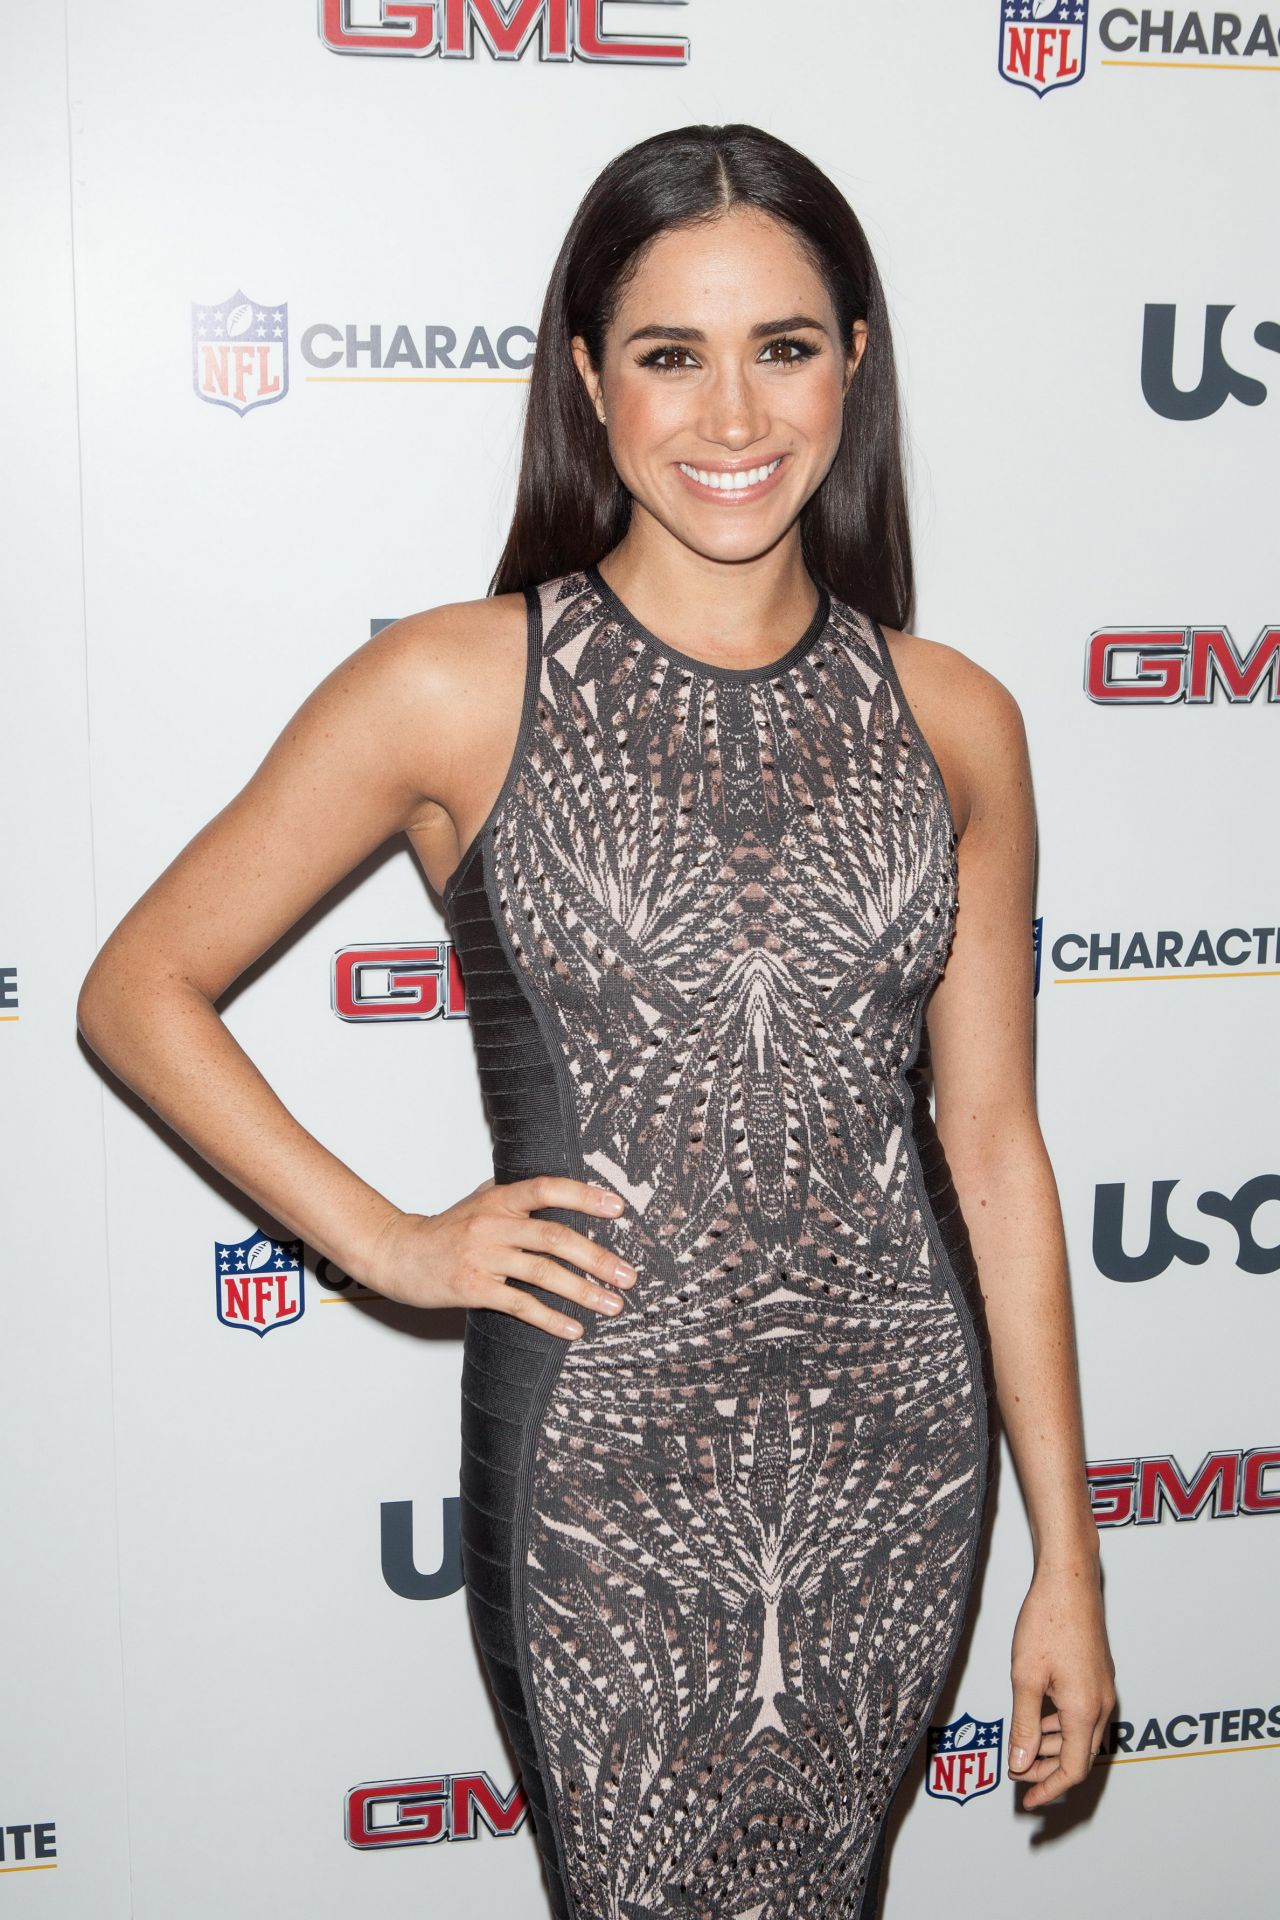 Meghan Markle 2014 Nfl Characters Unite At Sports